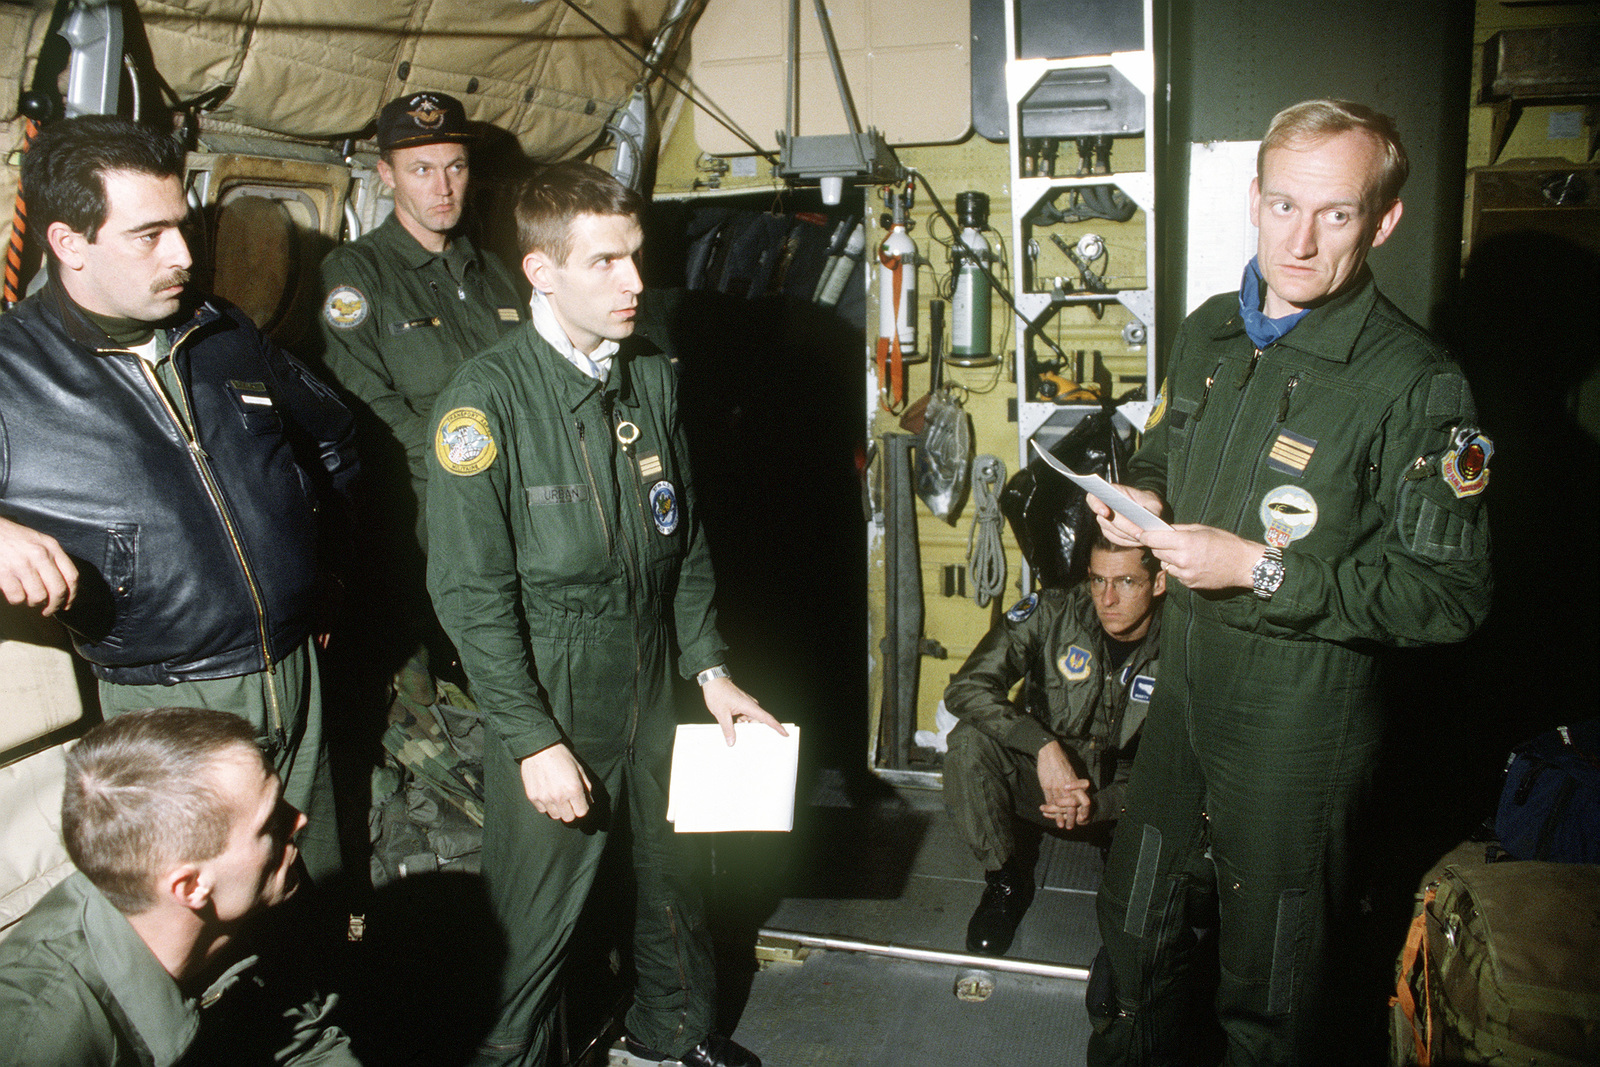 MAJ Maurin, a French Air Force C-160 Transall pilot, briefs his crew on their upcoming airdrop mission into Bosnia